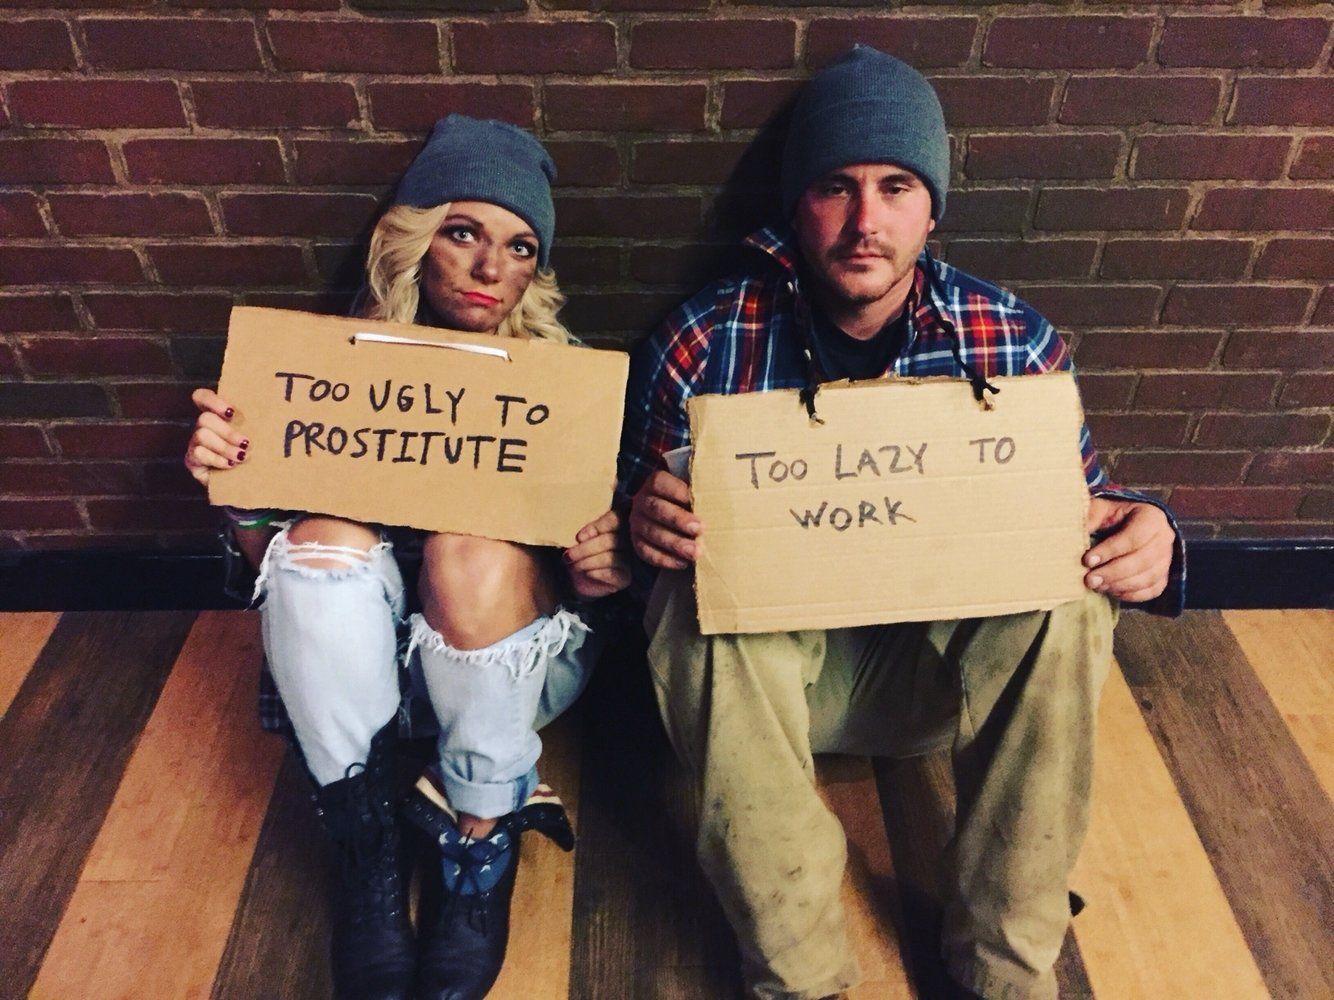 10 Perfect Couples Funny Halloween Costume Ideas funny couples costumes holidays pinterest funny couple 14 2021